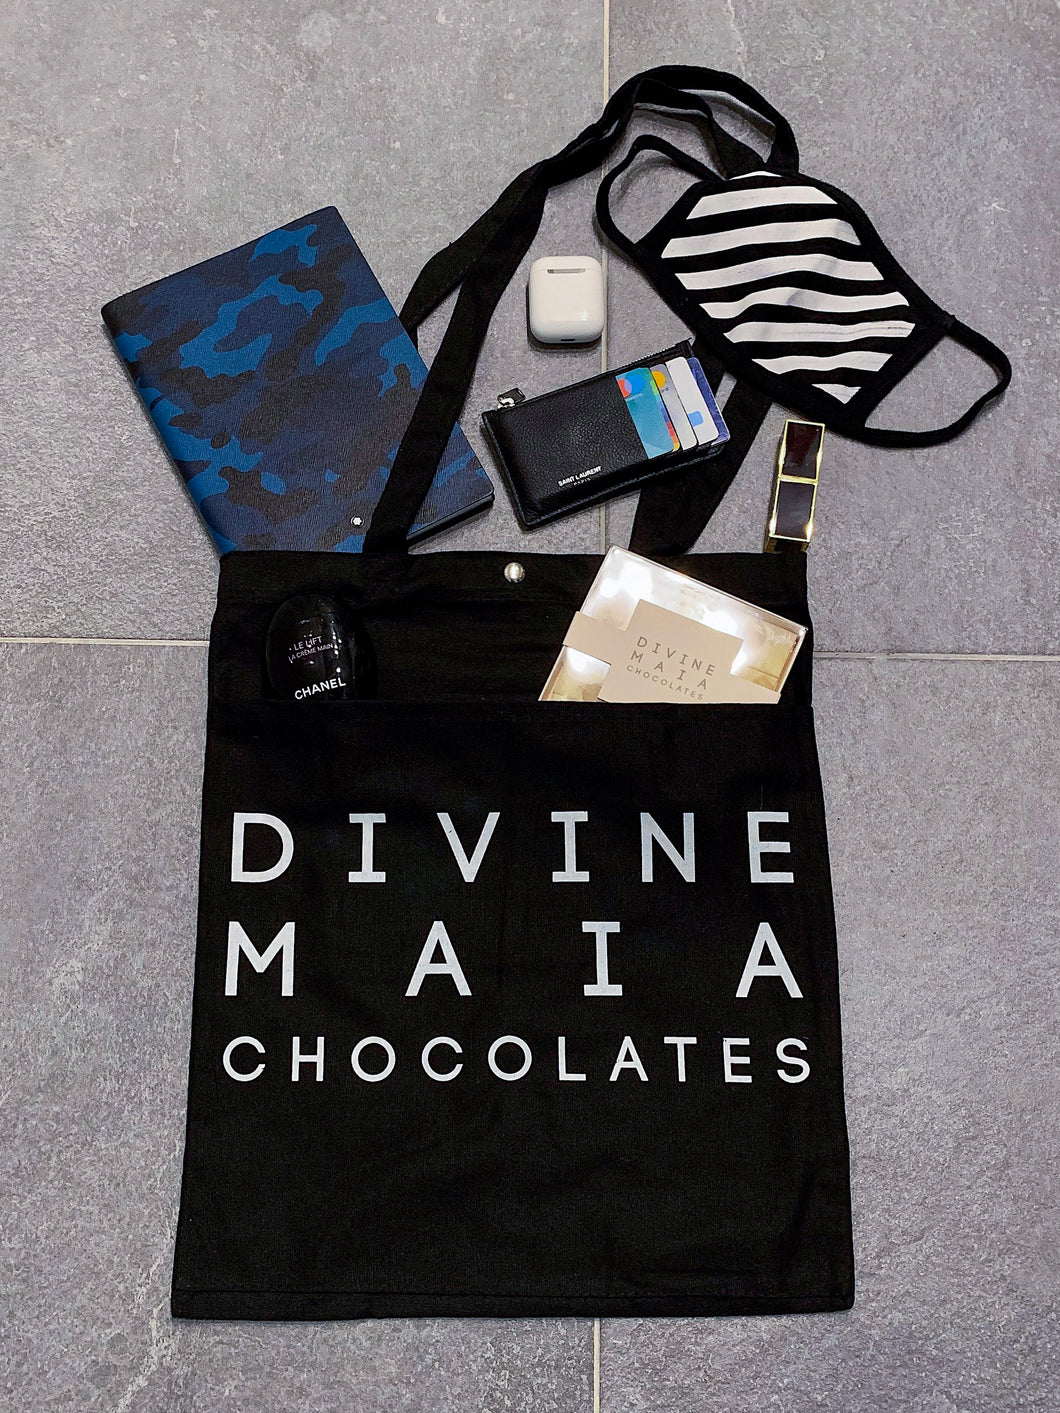 Divine Maia Chocolates'